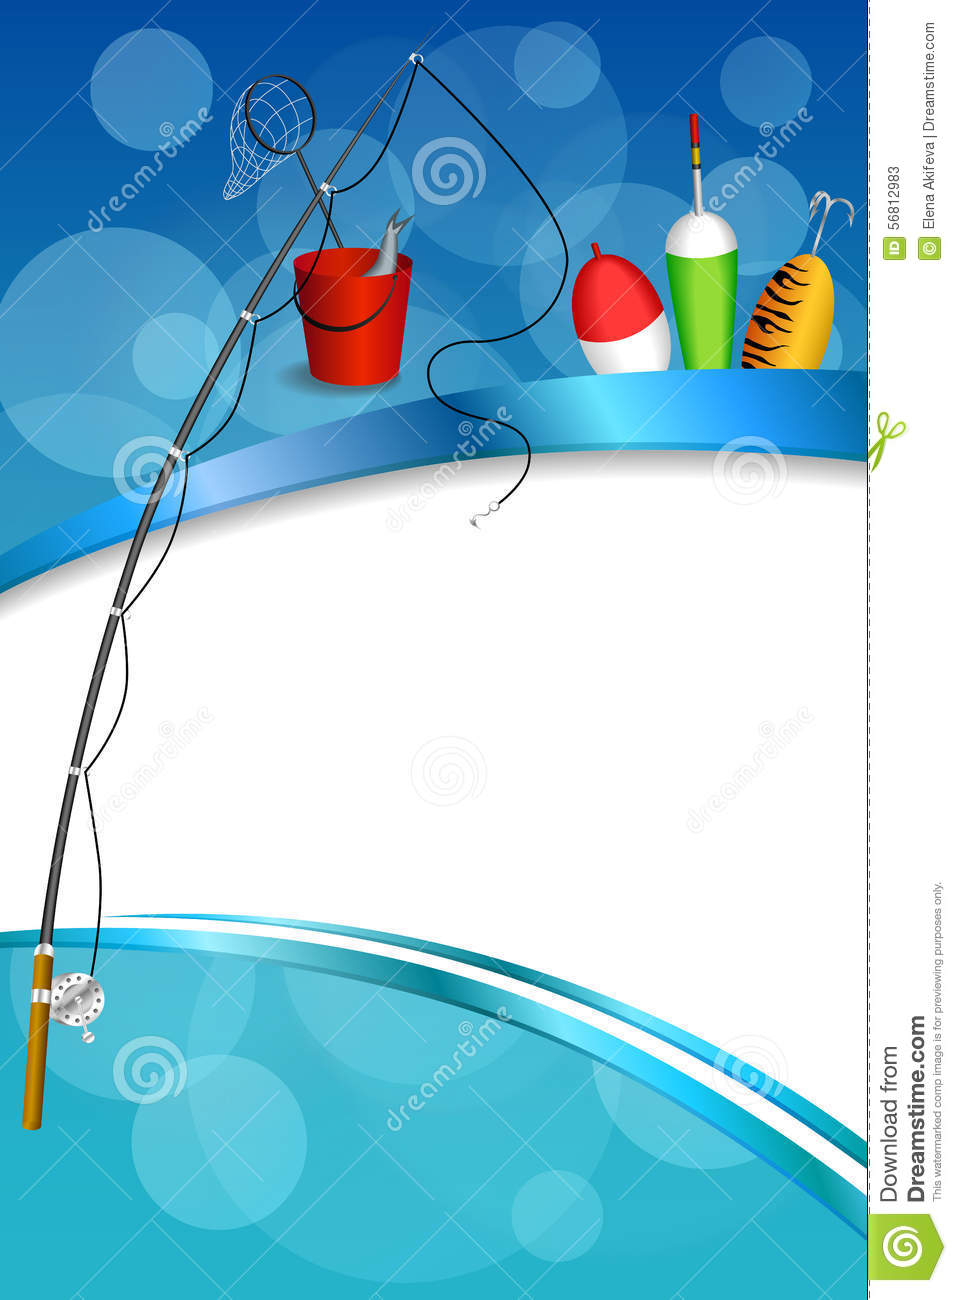 Background abstract blue white fishing rod red bucket fish for Fish photo frame